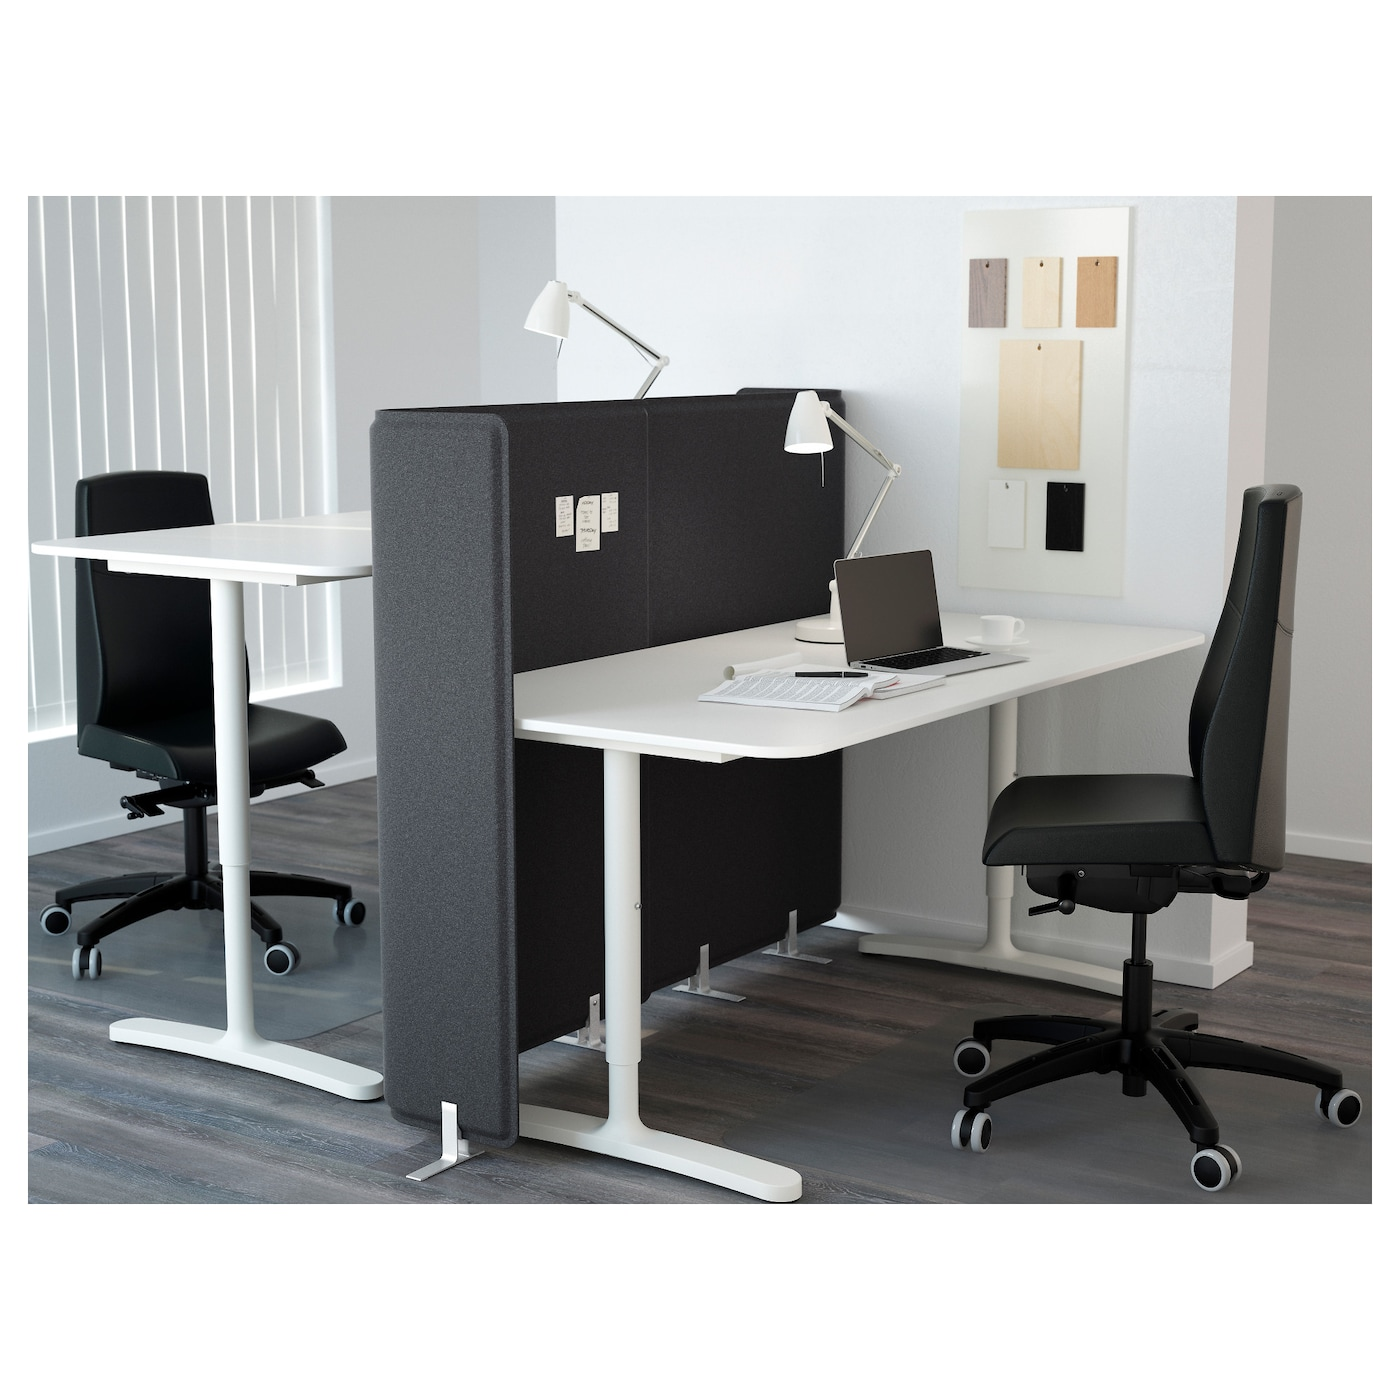 bekant desk with screen white 160 x 160 120 cm ikea. Black Bedroom Furniture Sets. Home Design Ideas